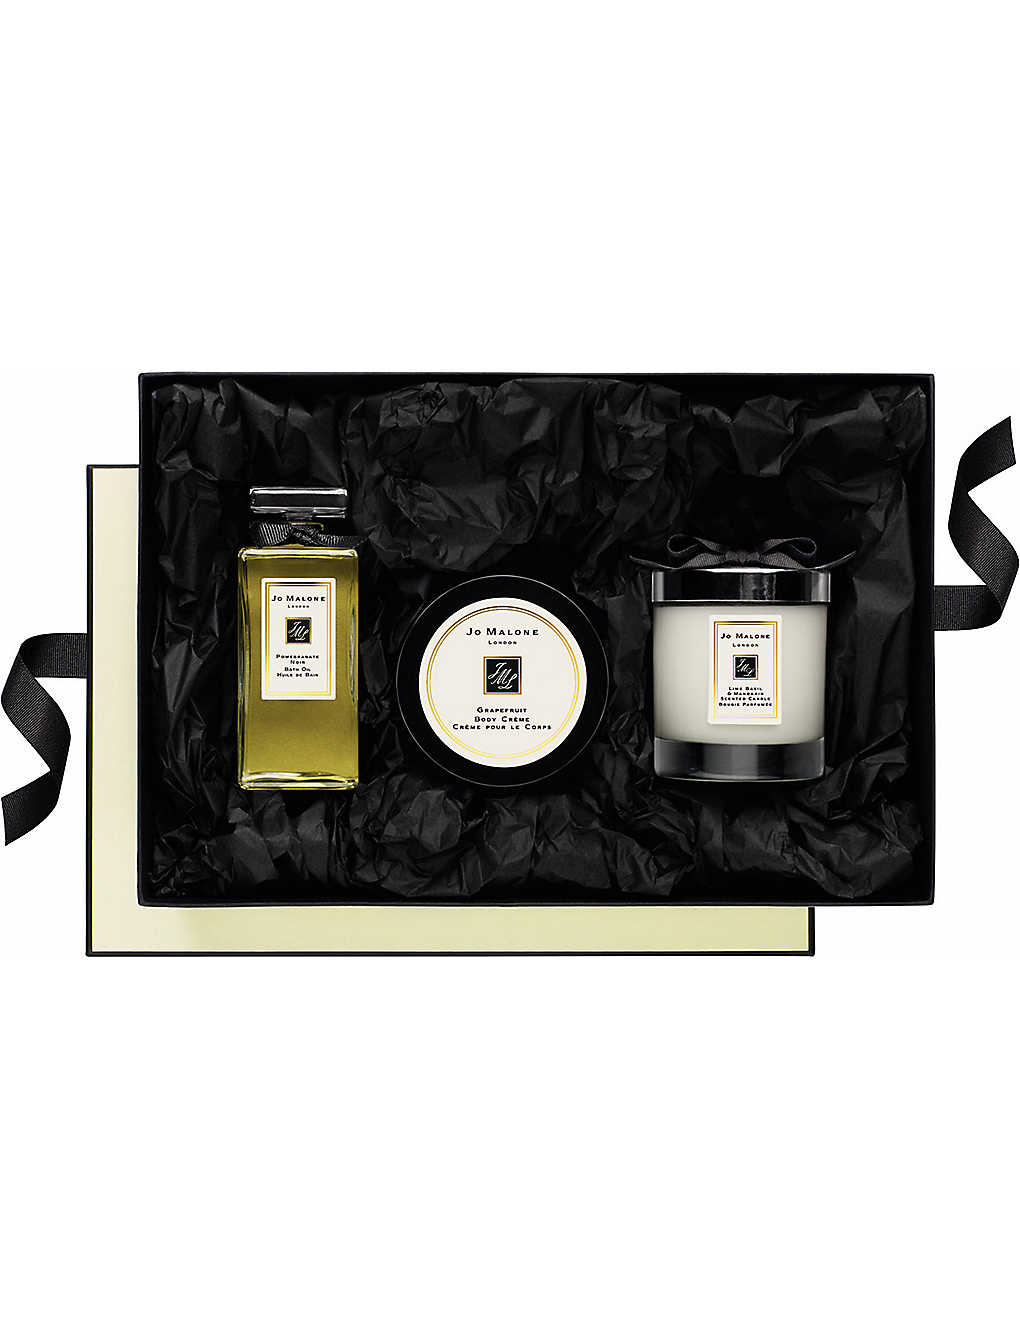 JO MALONE LONDON: Lush Layering gift set